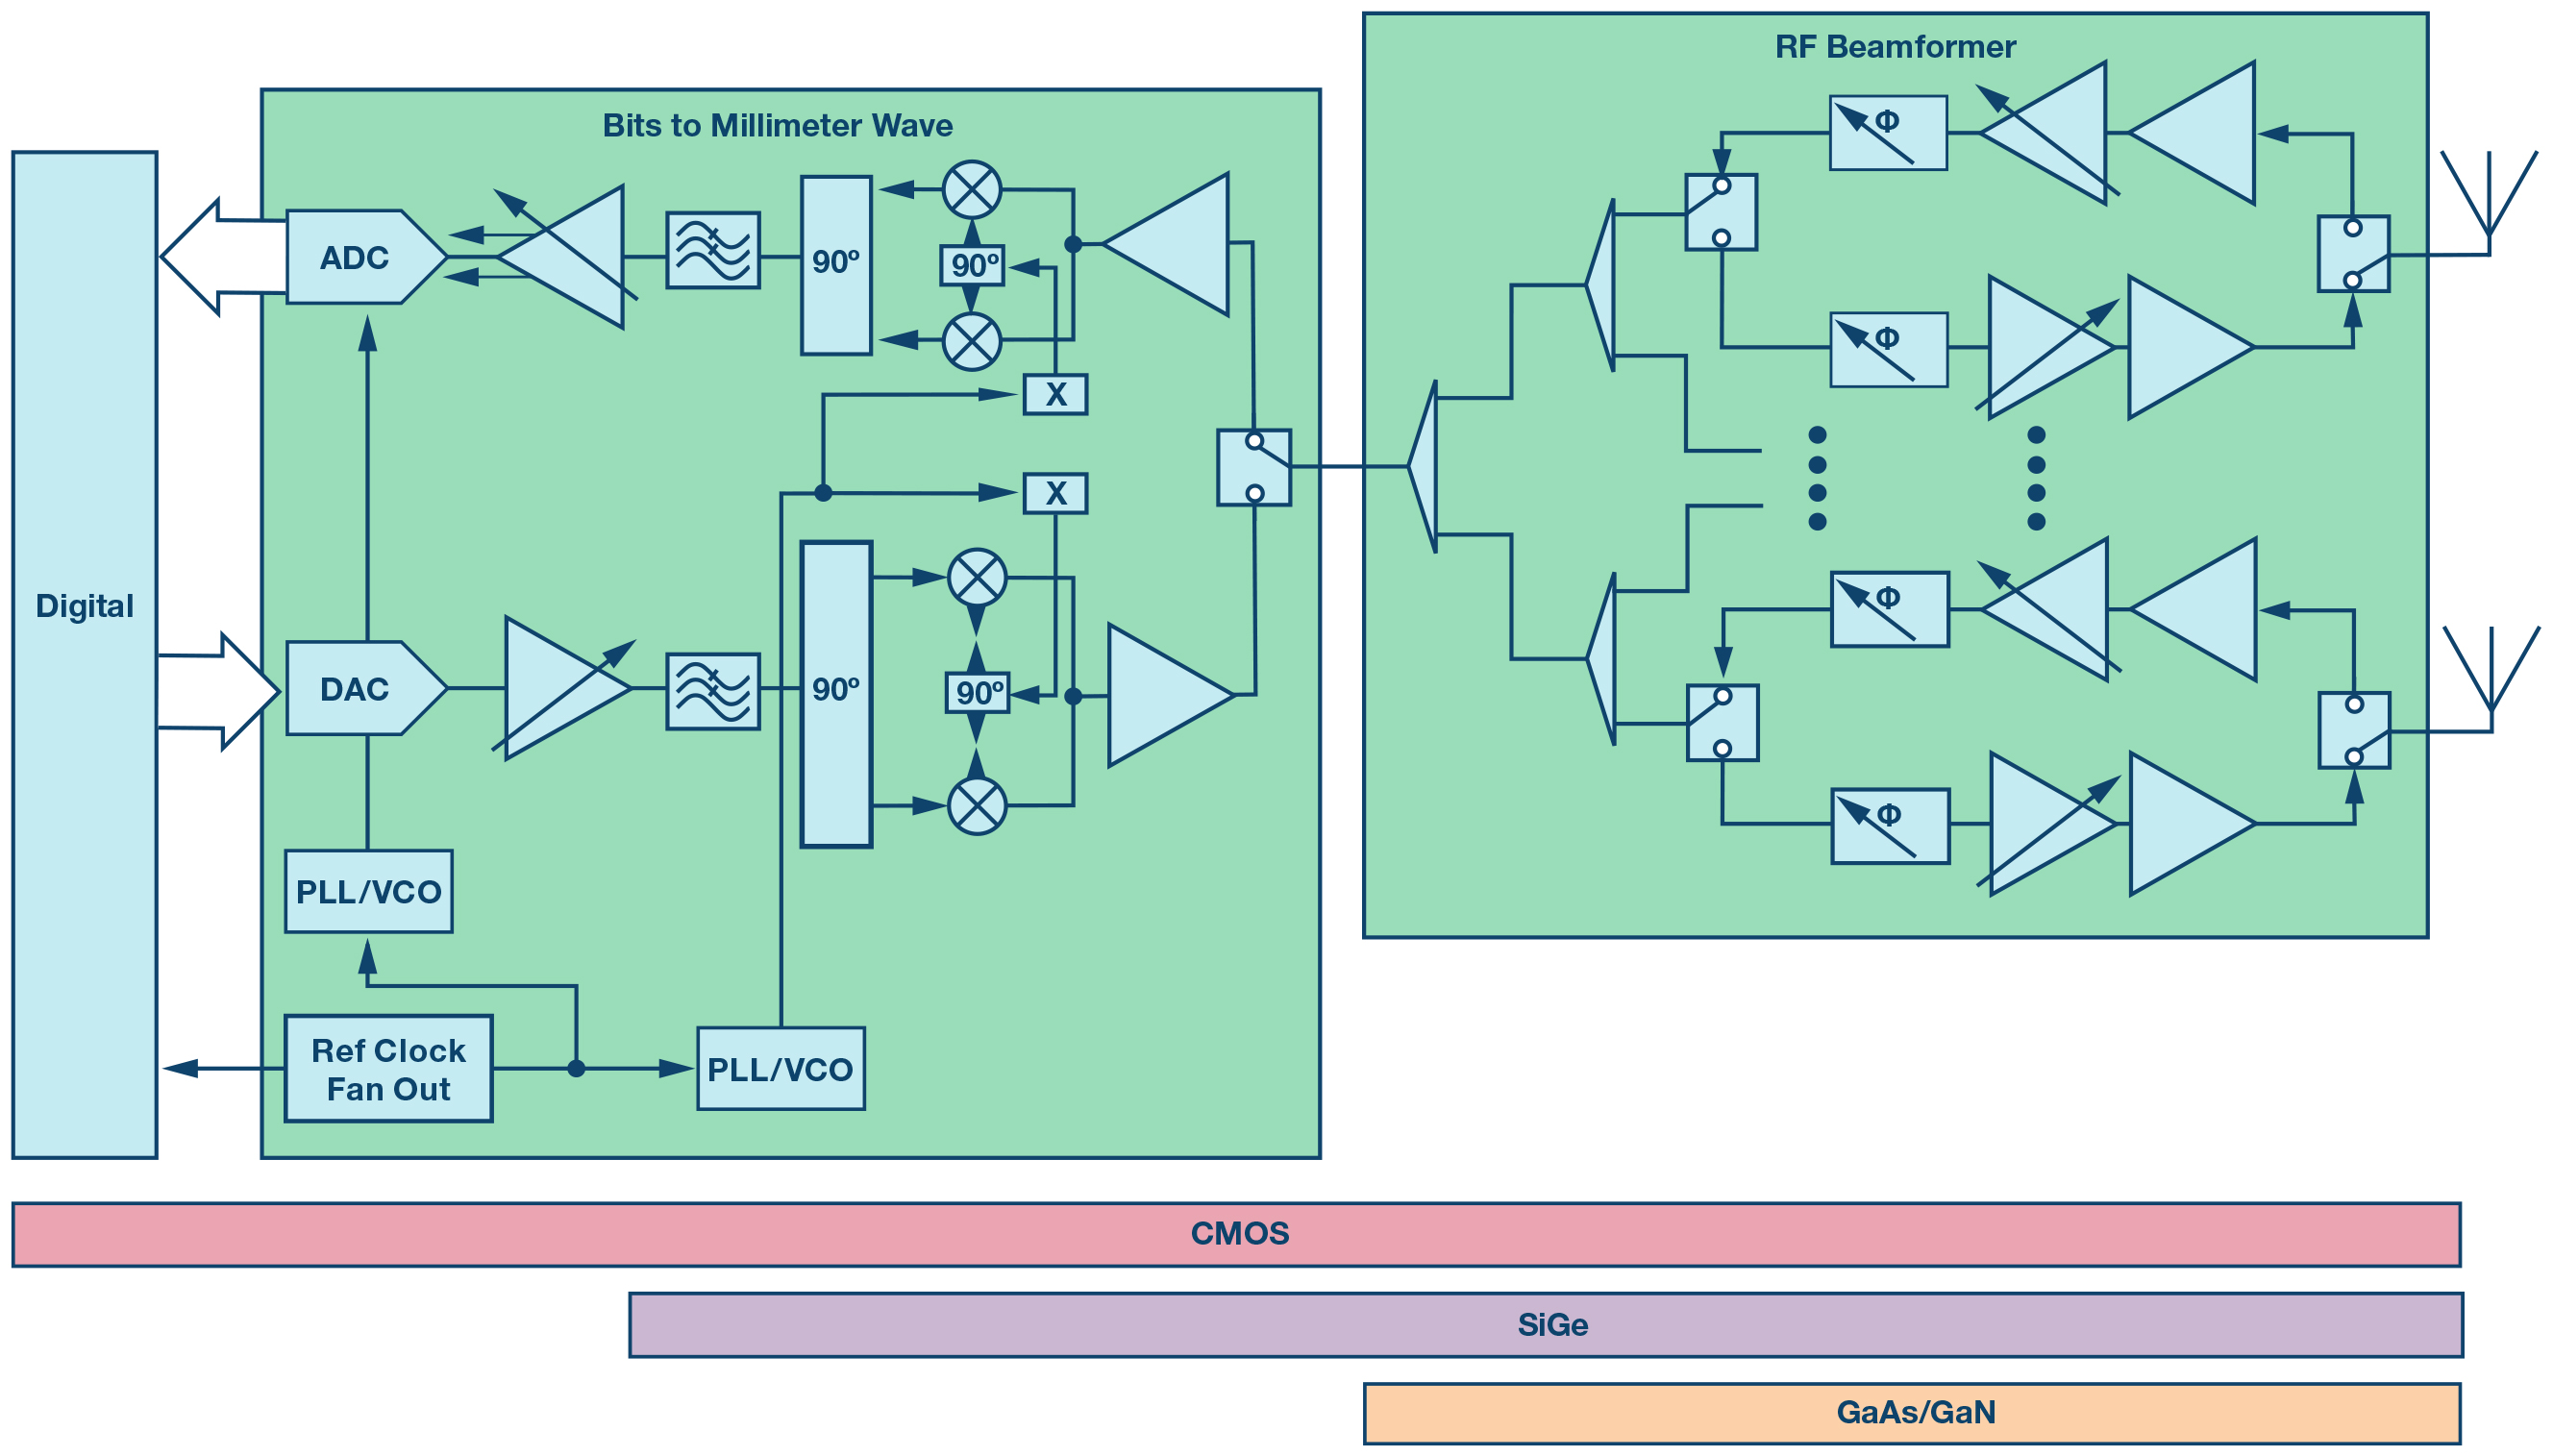 analog beamforming system block diagram  [ 2656 x 1515 Pixel ]